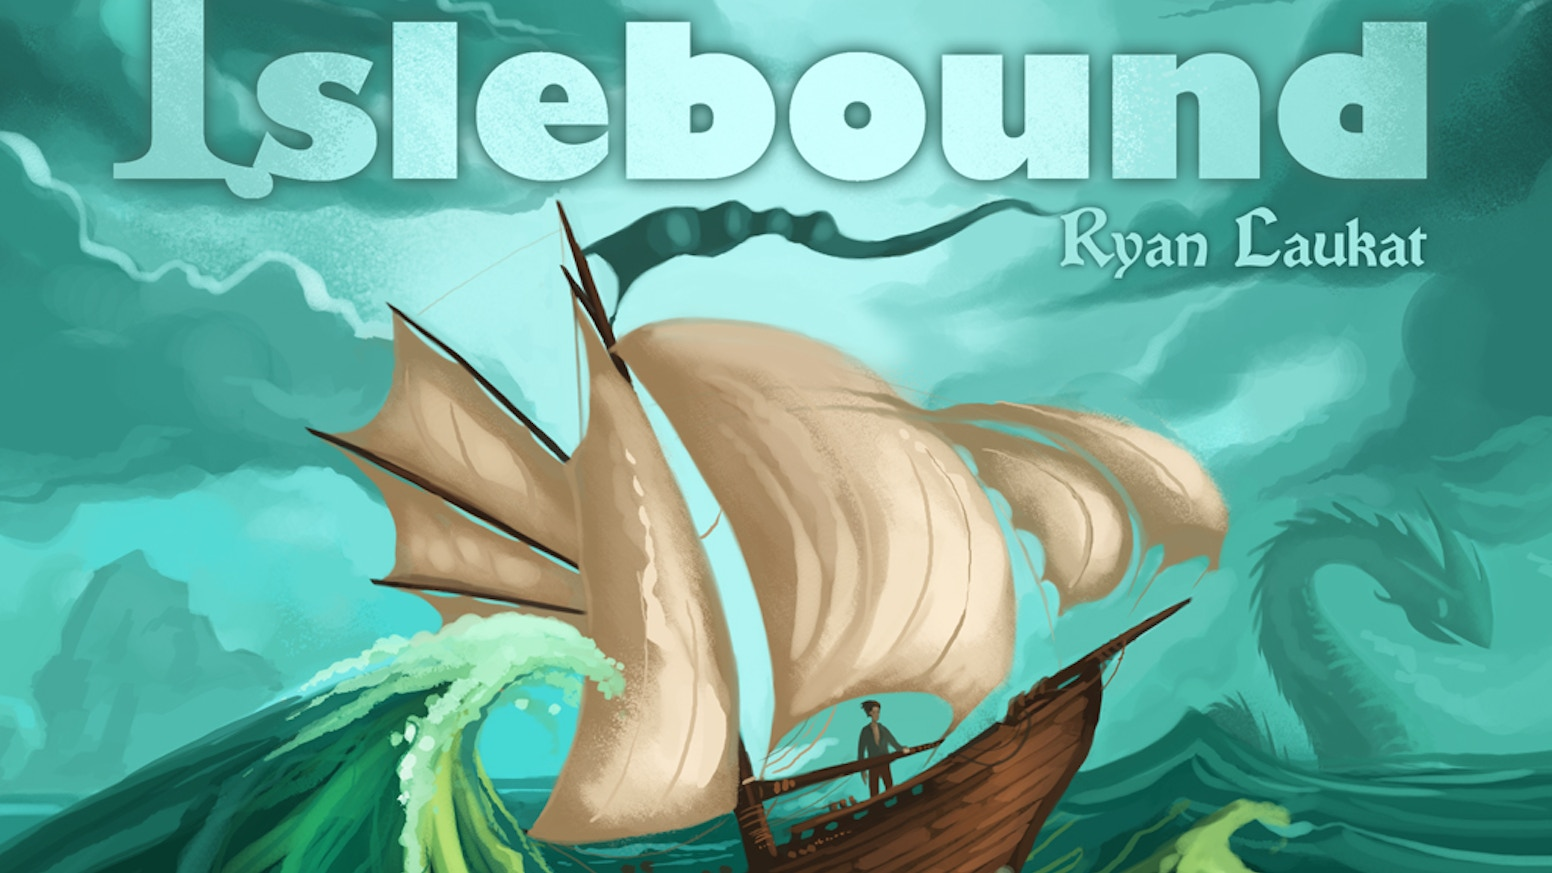 Sail through a mythical archipelago filled with pirates and sea serpents in this board game for 2-4 friends.